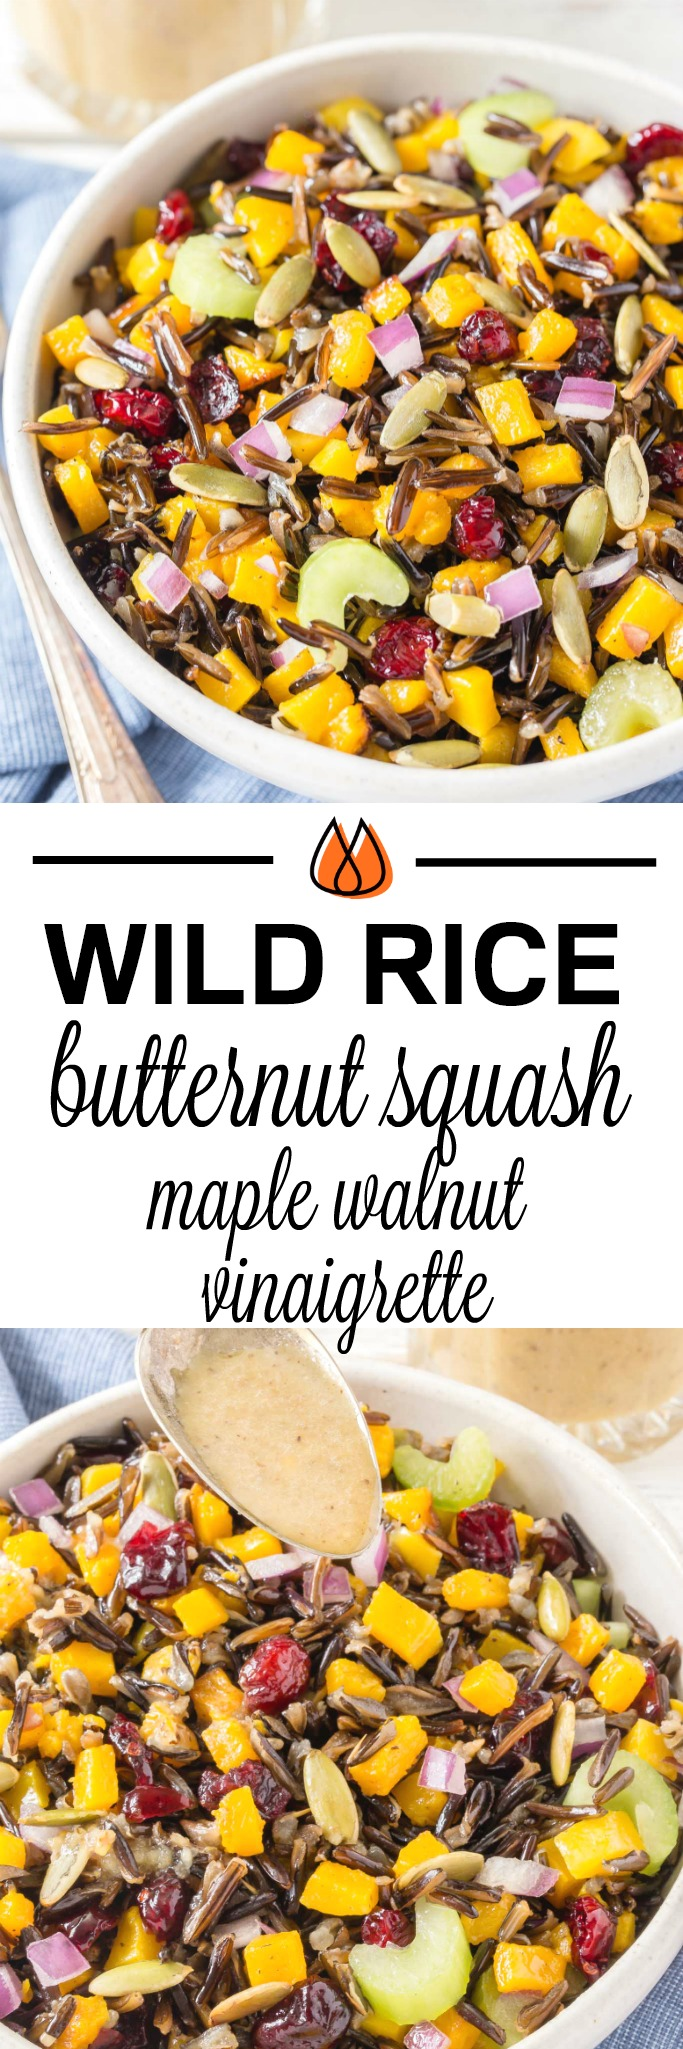 This Wild Rice and Butternut Squash dish is perfect for a holiday side dish!